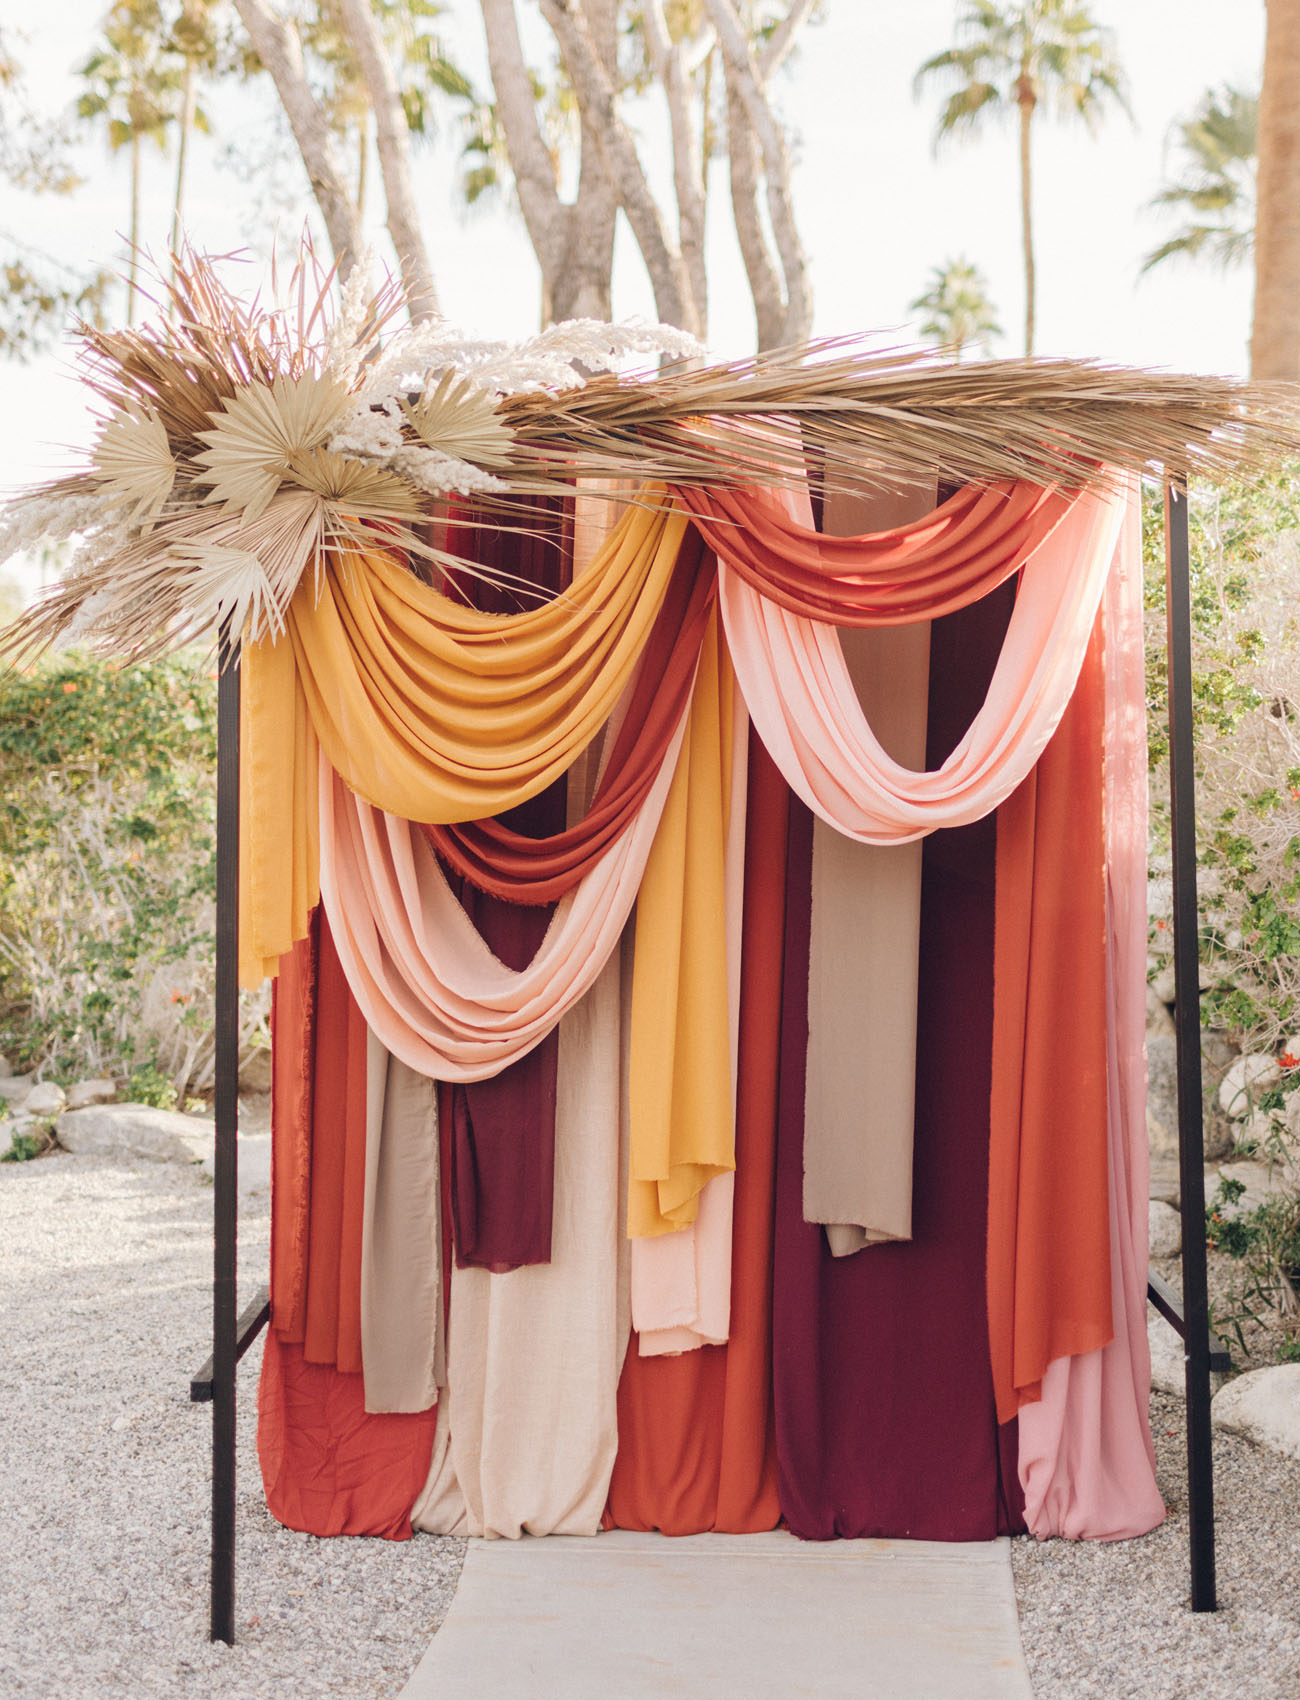 Earth Neutral Easy Tone cloth fabric hanging from frame decorated for photoshoot wedding photobooth DIY home-made custom